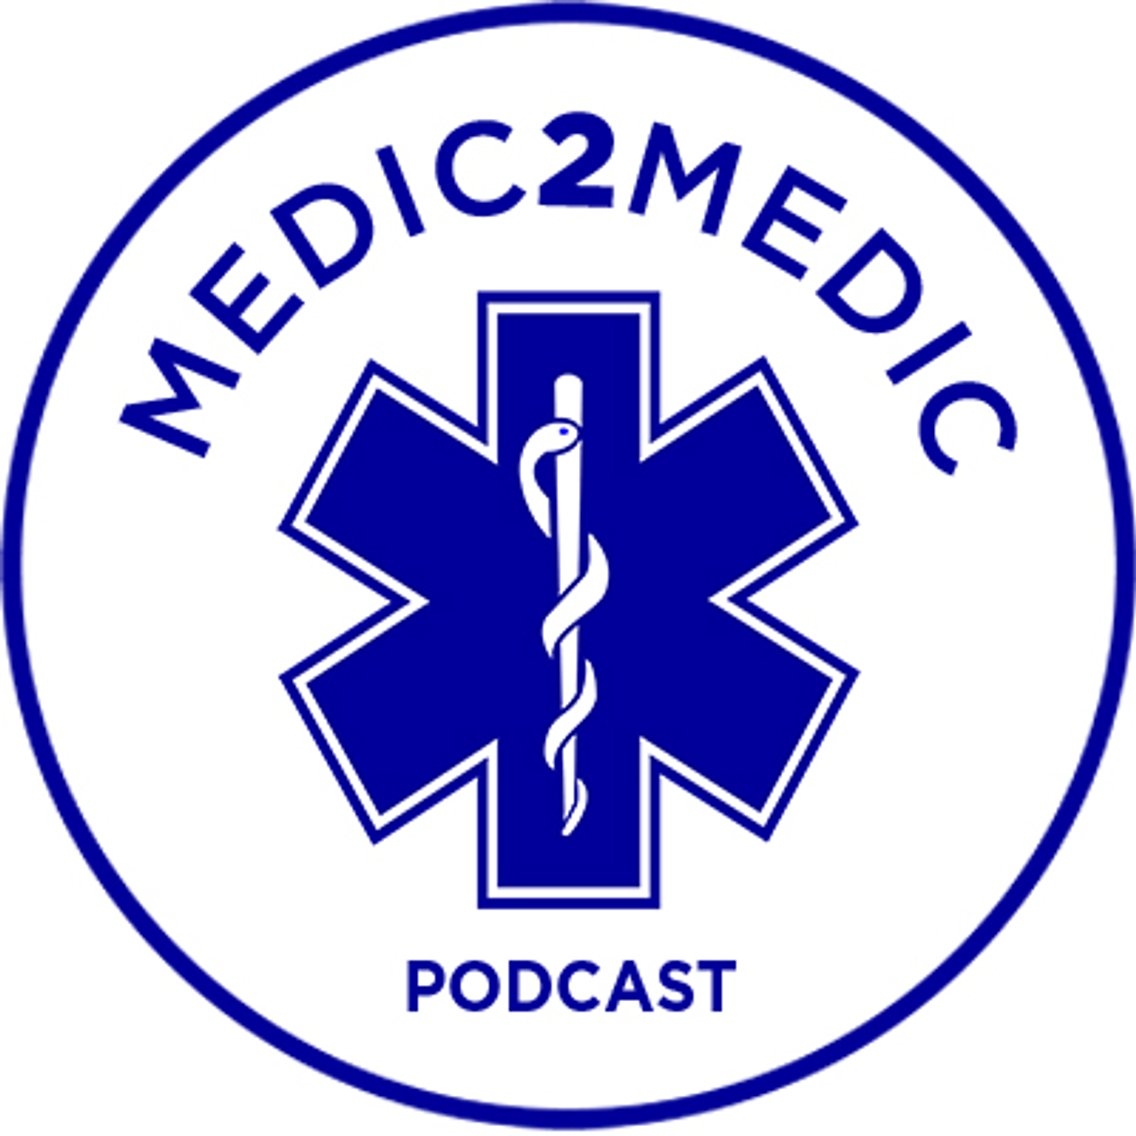 Medic2Medic Podcast - Cover Image